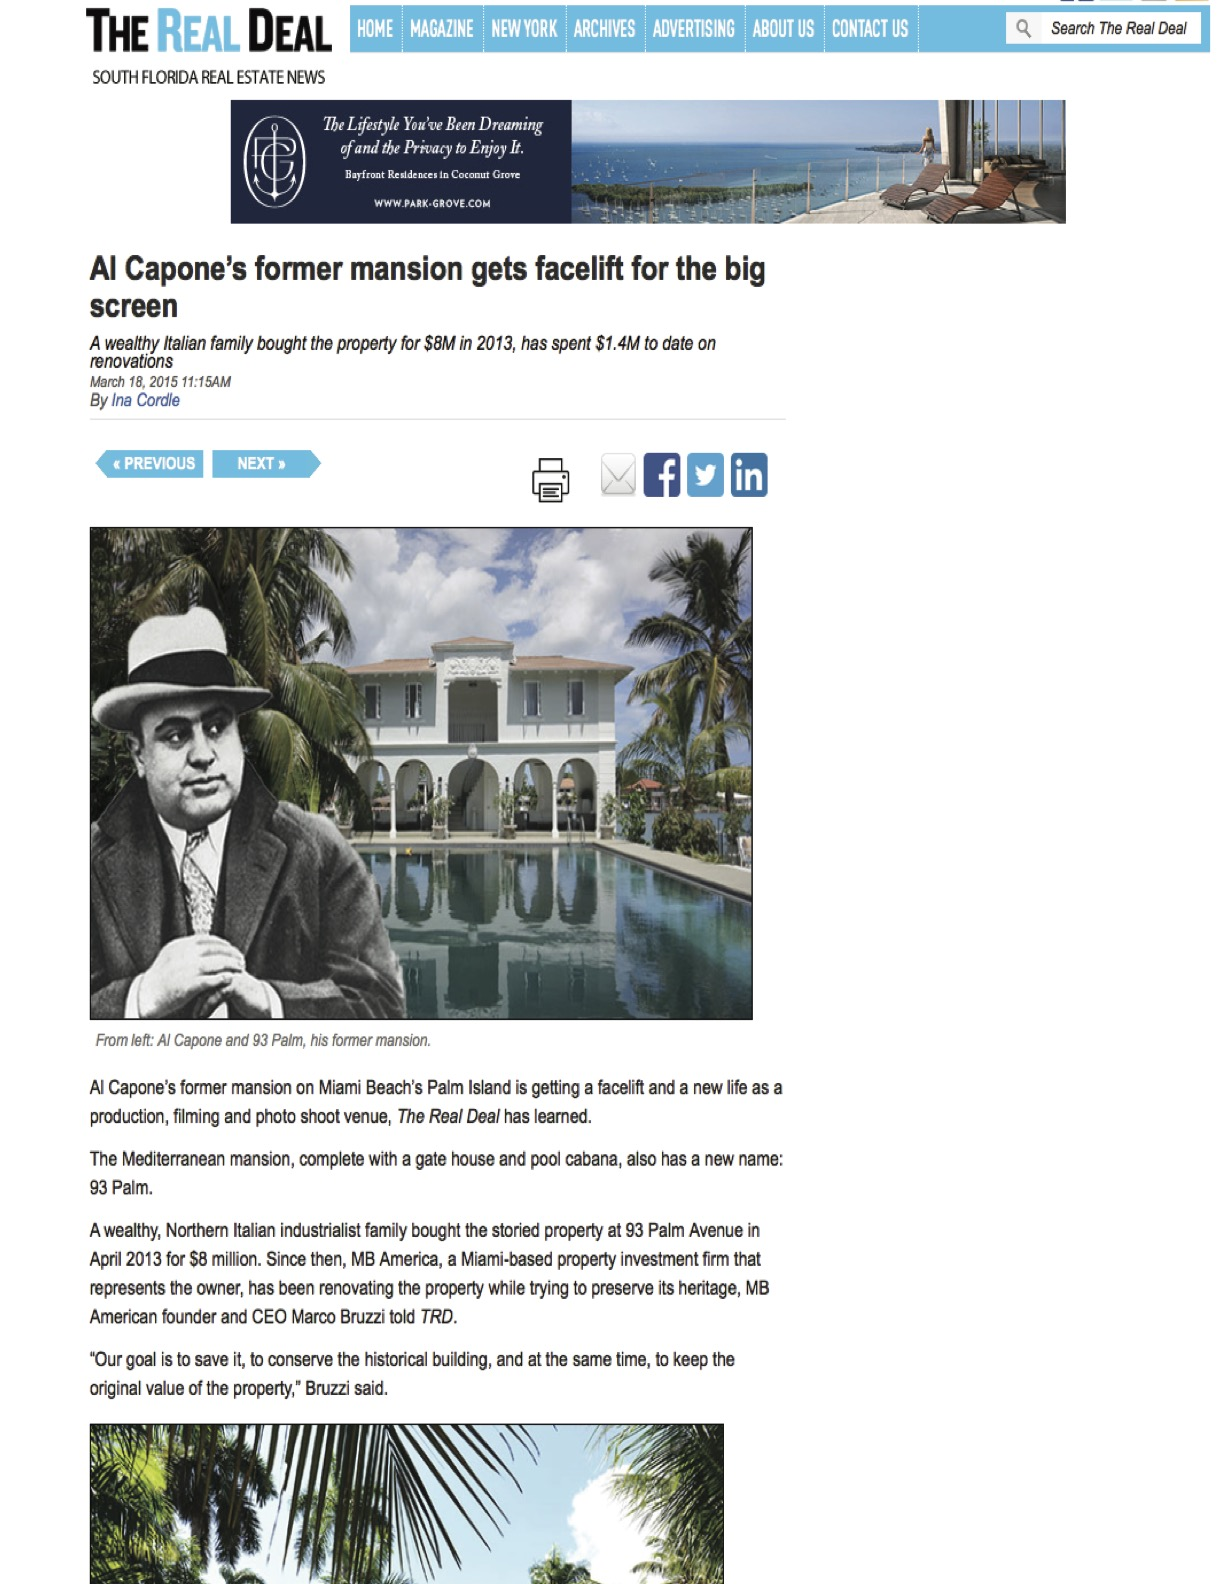 """<p><strong>The Real Deal</strong><a href=""""http://therealdeal.com/miami/blog/2015/03/18/al-capones-former-mansion-gets-facelift-for-the-big-screen/"""" target=""""_blank"""">View Article →</a></p>"""